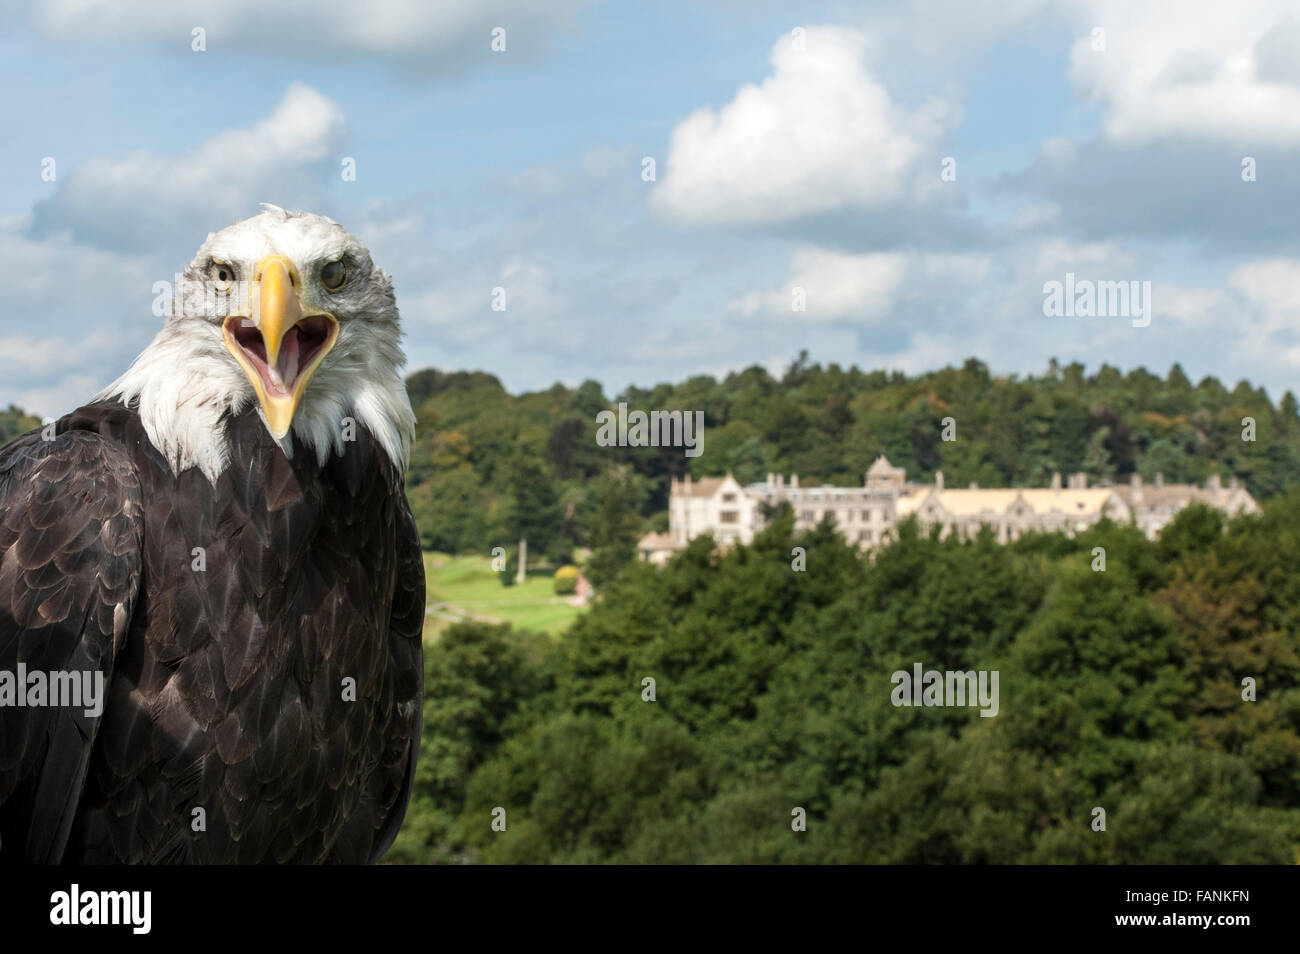 Bald Eagle (Haliaeetus leucocephalus) with its mouth open and Bovey Castle hotel in the background Dartmoor, England - Stock Image